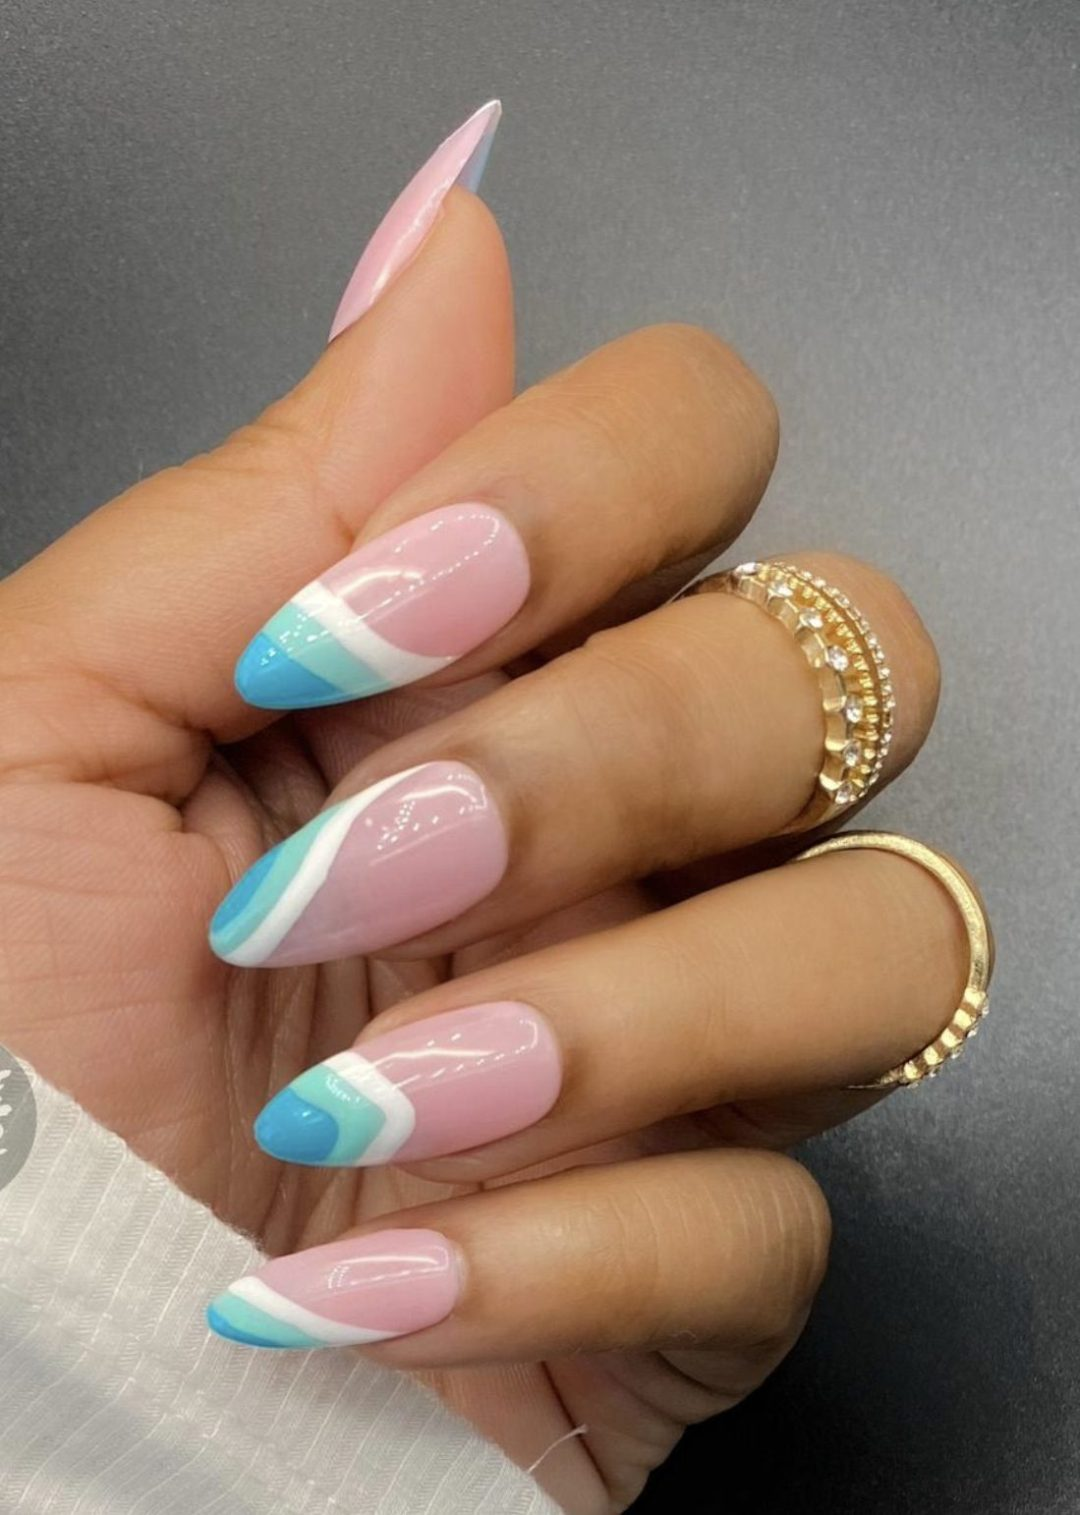 Cute pastel blue French tip nails with abstract swirls